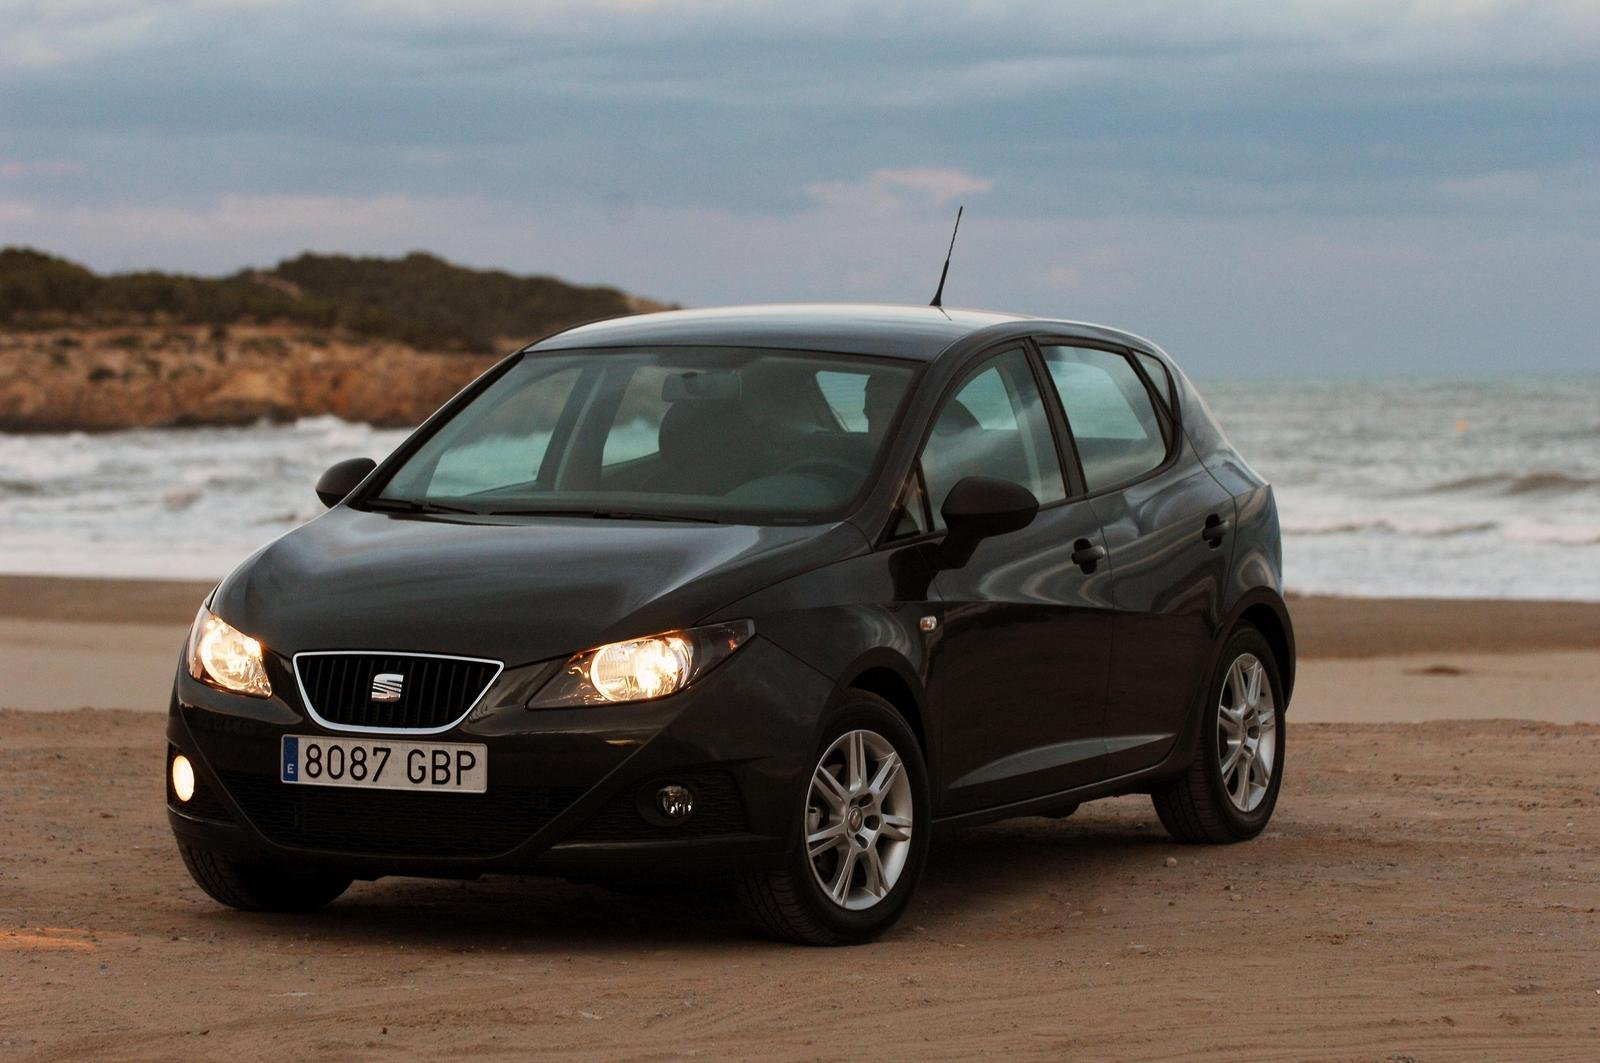 2009 seat ibiza picture 249590 car review top speed. Black Bedroom Furniture Sets. Home Design Ideas